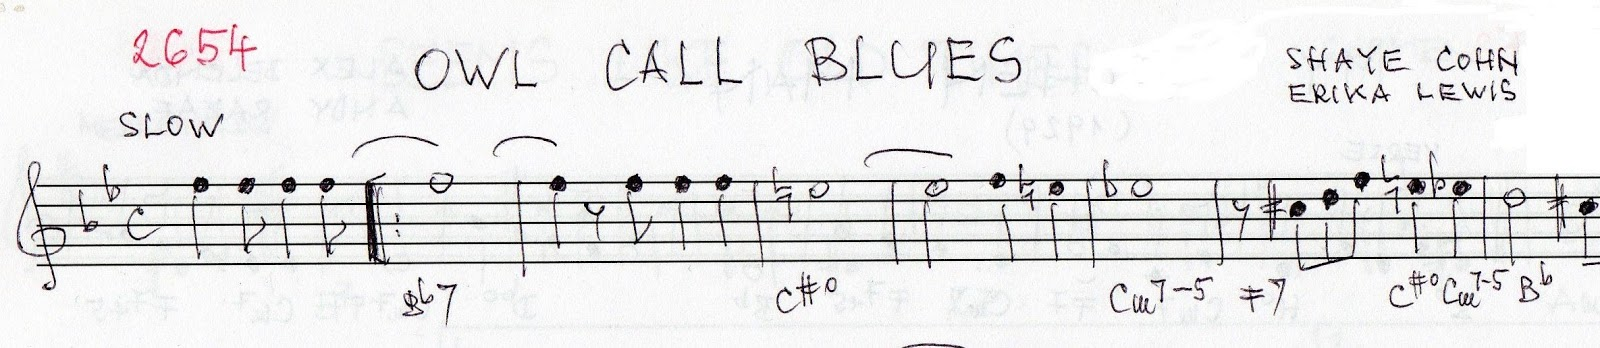 Pops Coffees Traditional Jazz Post 283 Chords Insight Owl Call